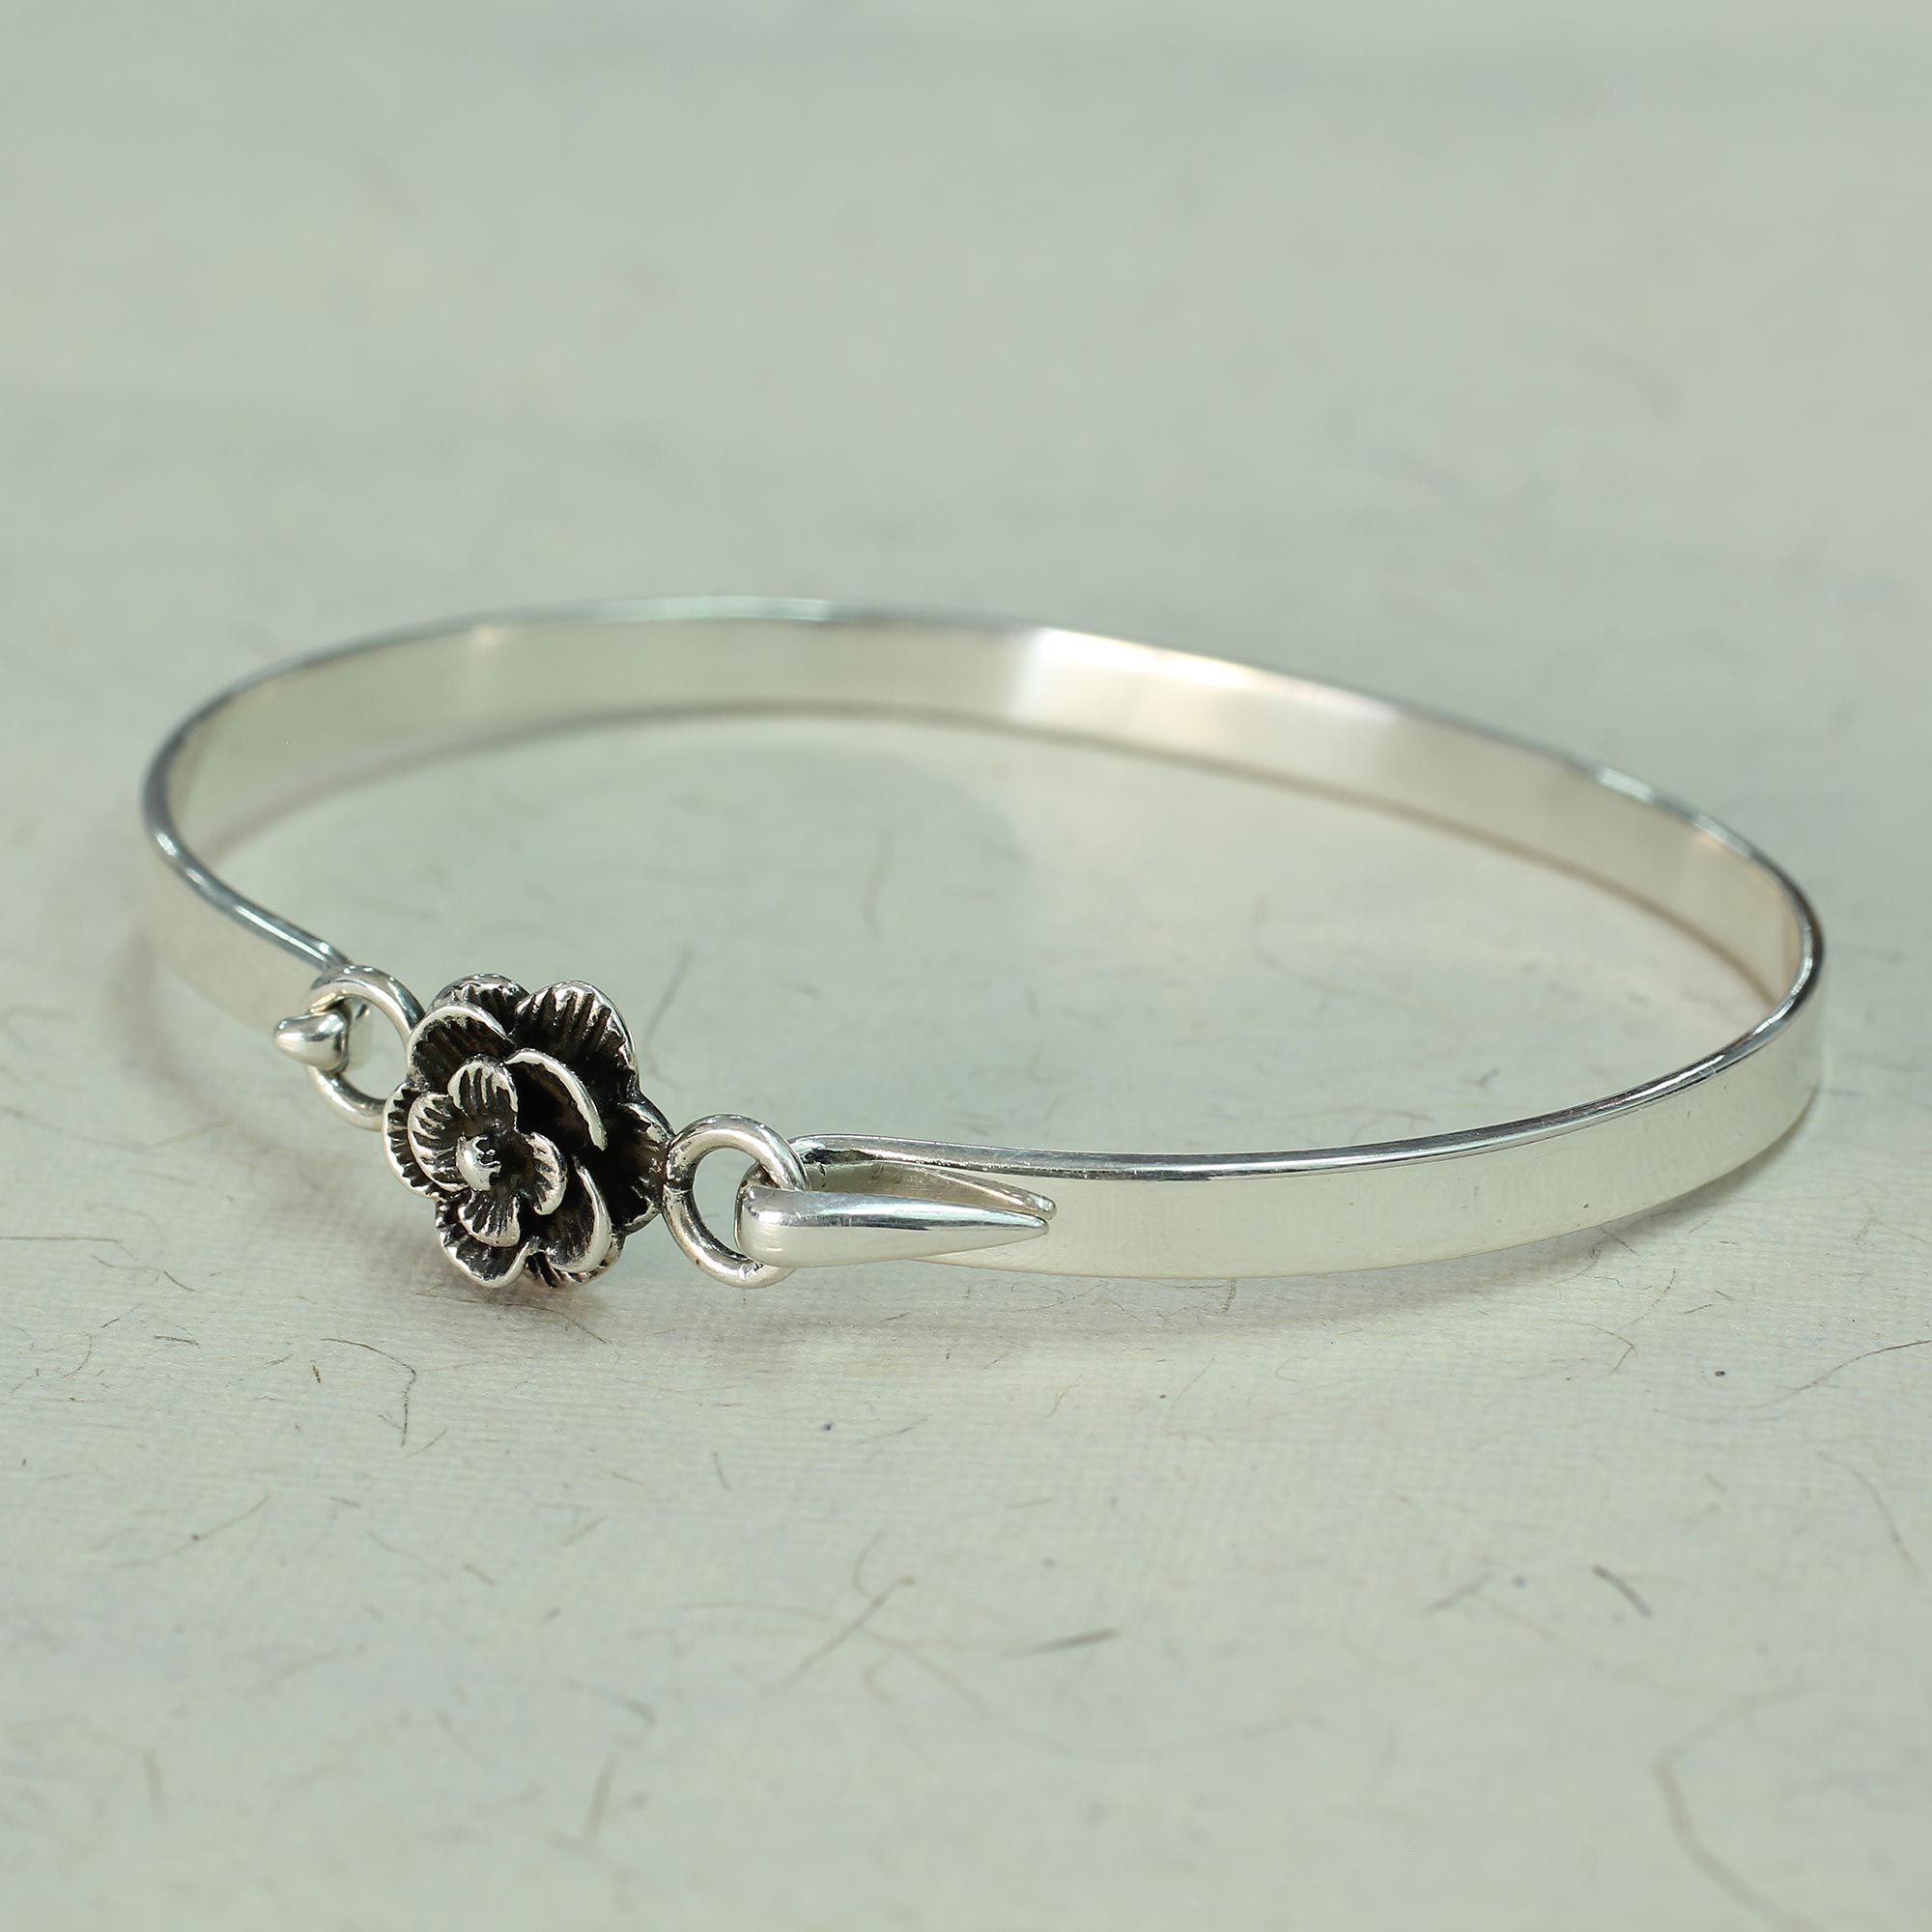 Hand Made Sterling Silver Rose Bracelet From India Beauty Novica